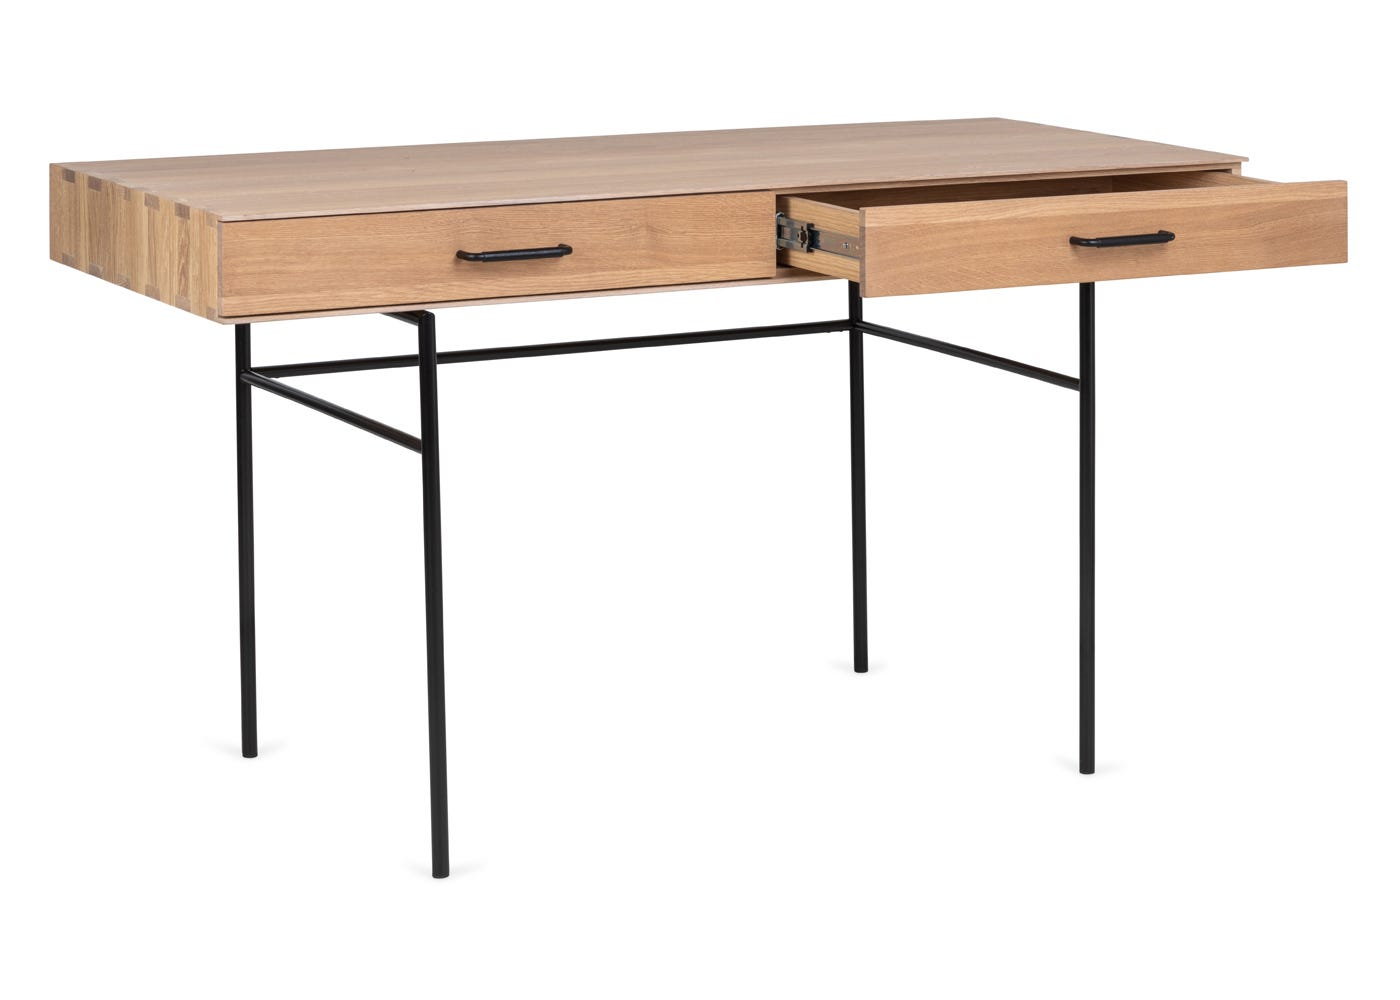 The Marano desk has 2 drawers, ideal for storage.